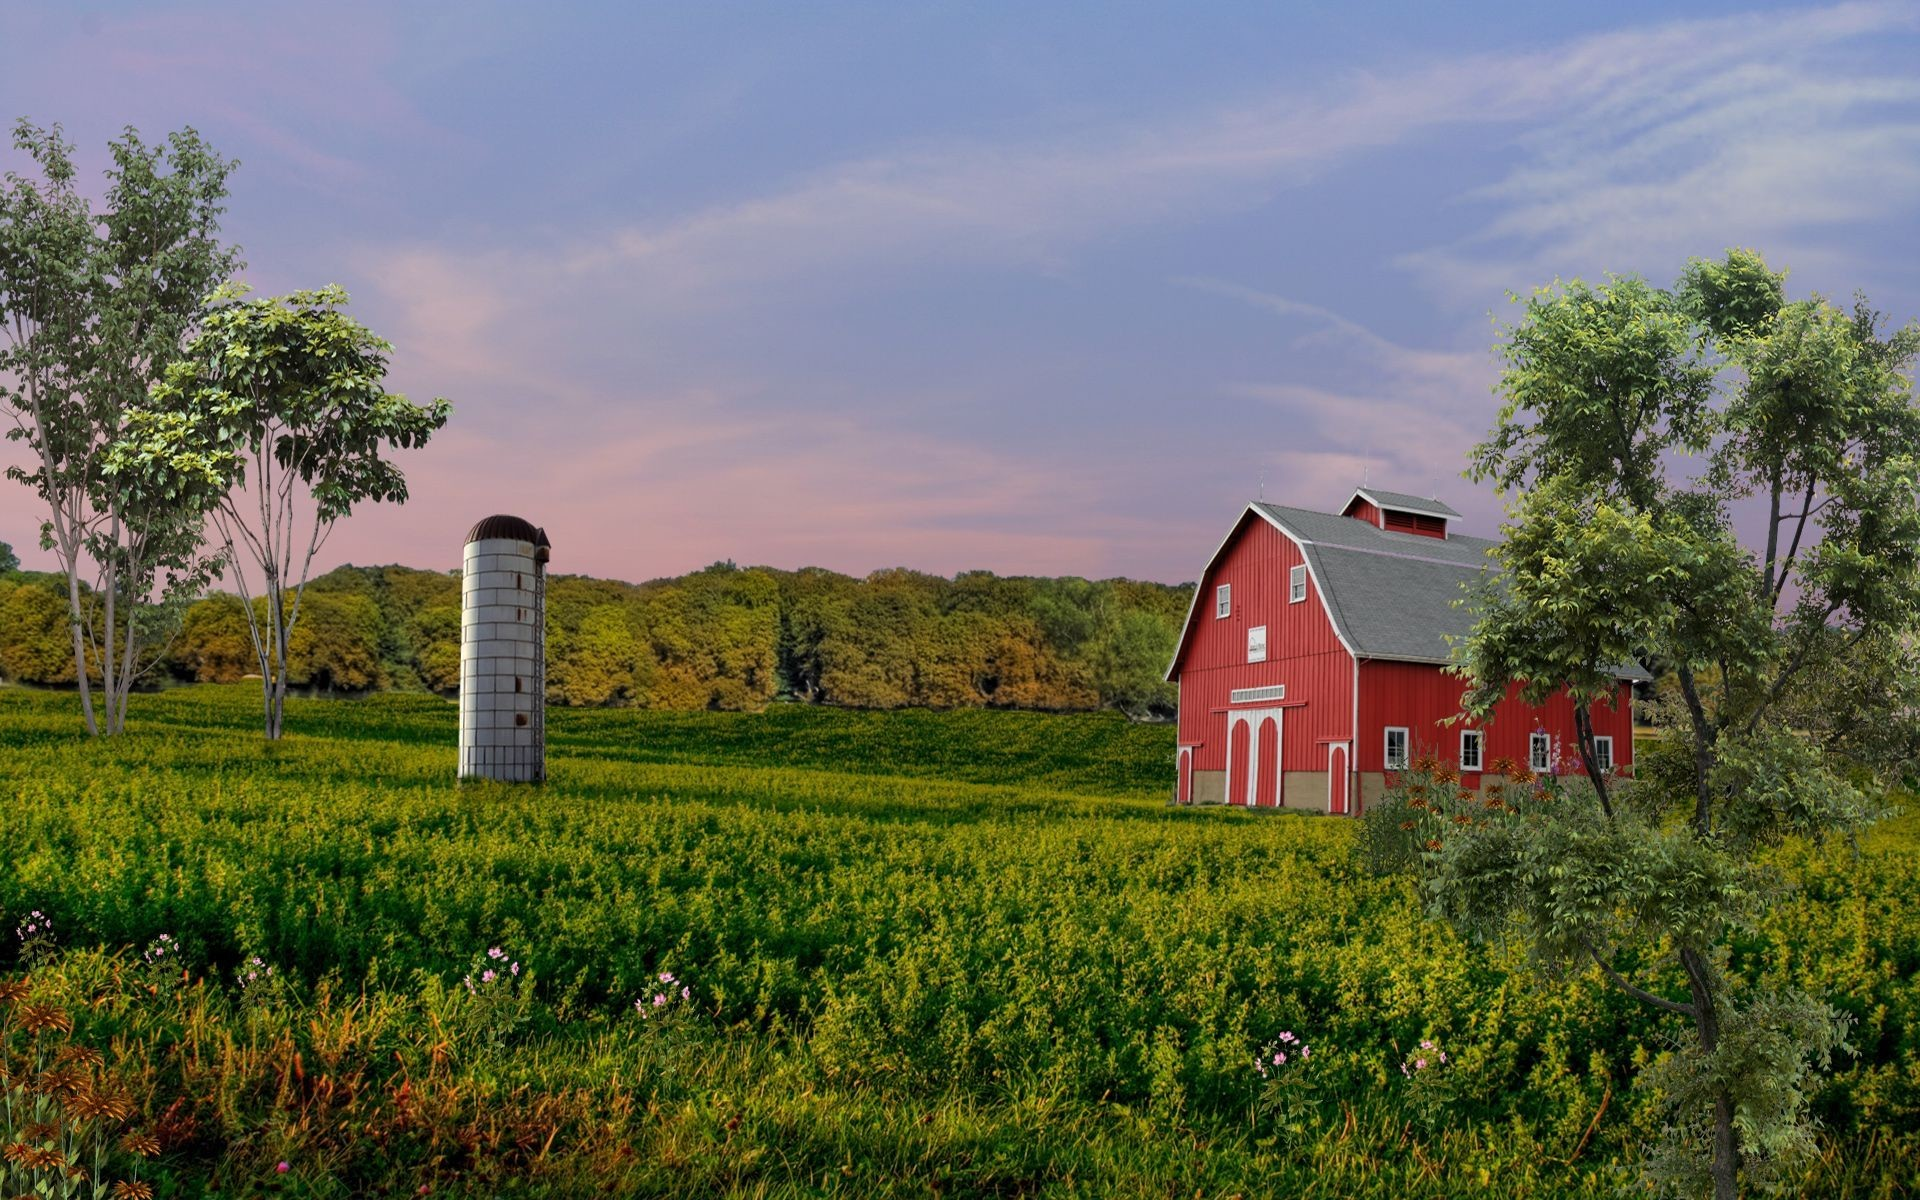 "1920x1200 1280x800 country | old country barn wallpaper surreal country scene  wallpaper"">"